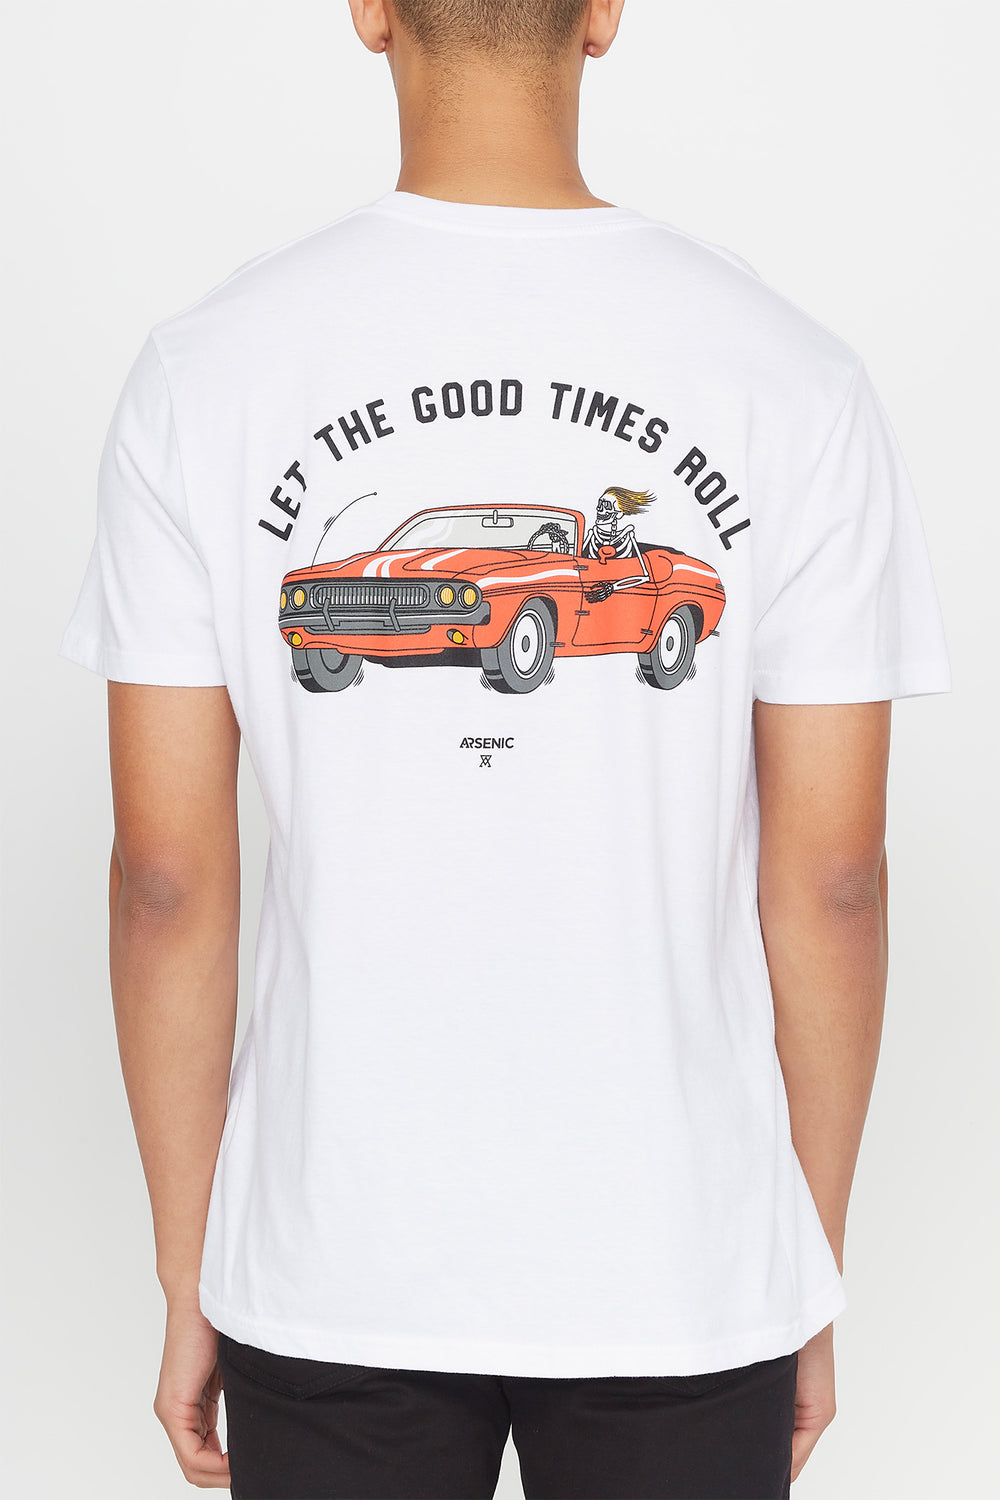 T-Shirt Imprimé Let the Good Times Roll Arsenic Homme Blanc